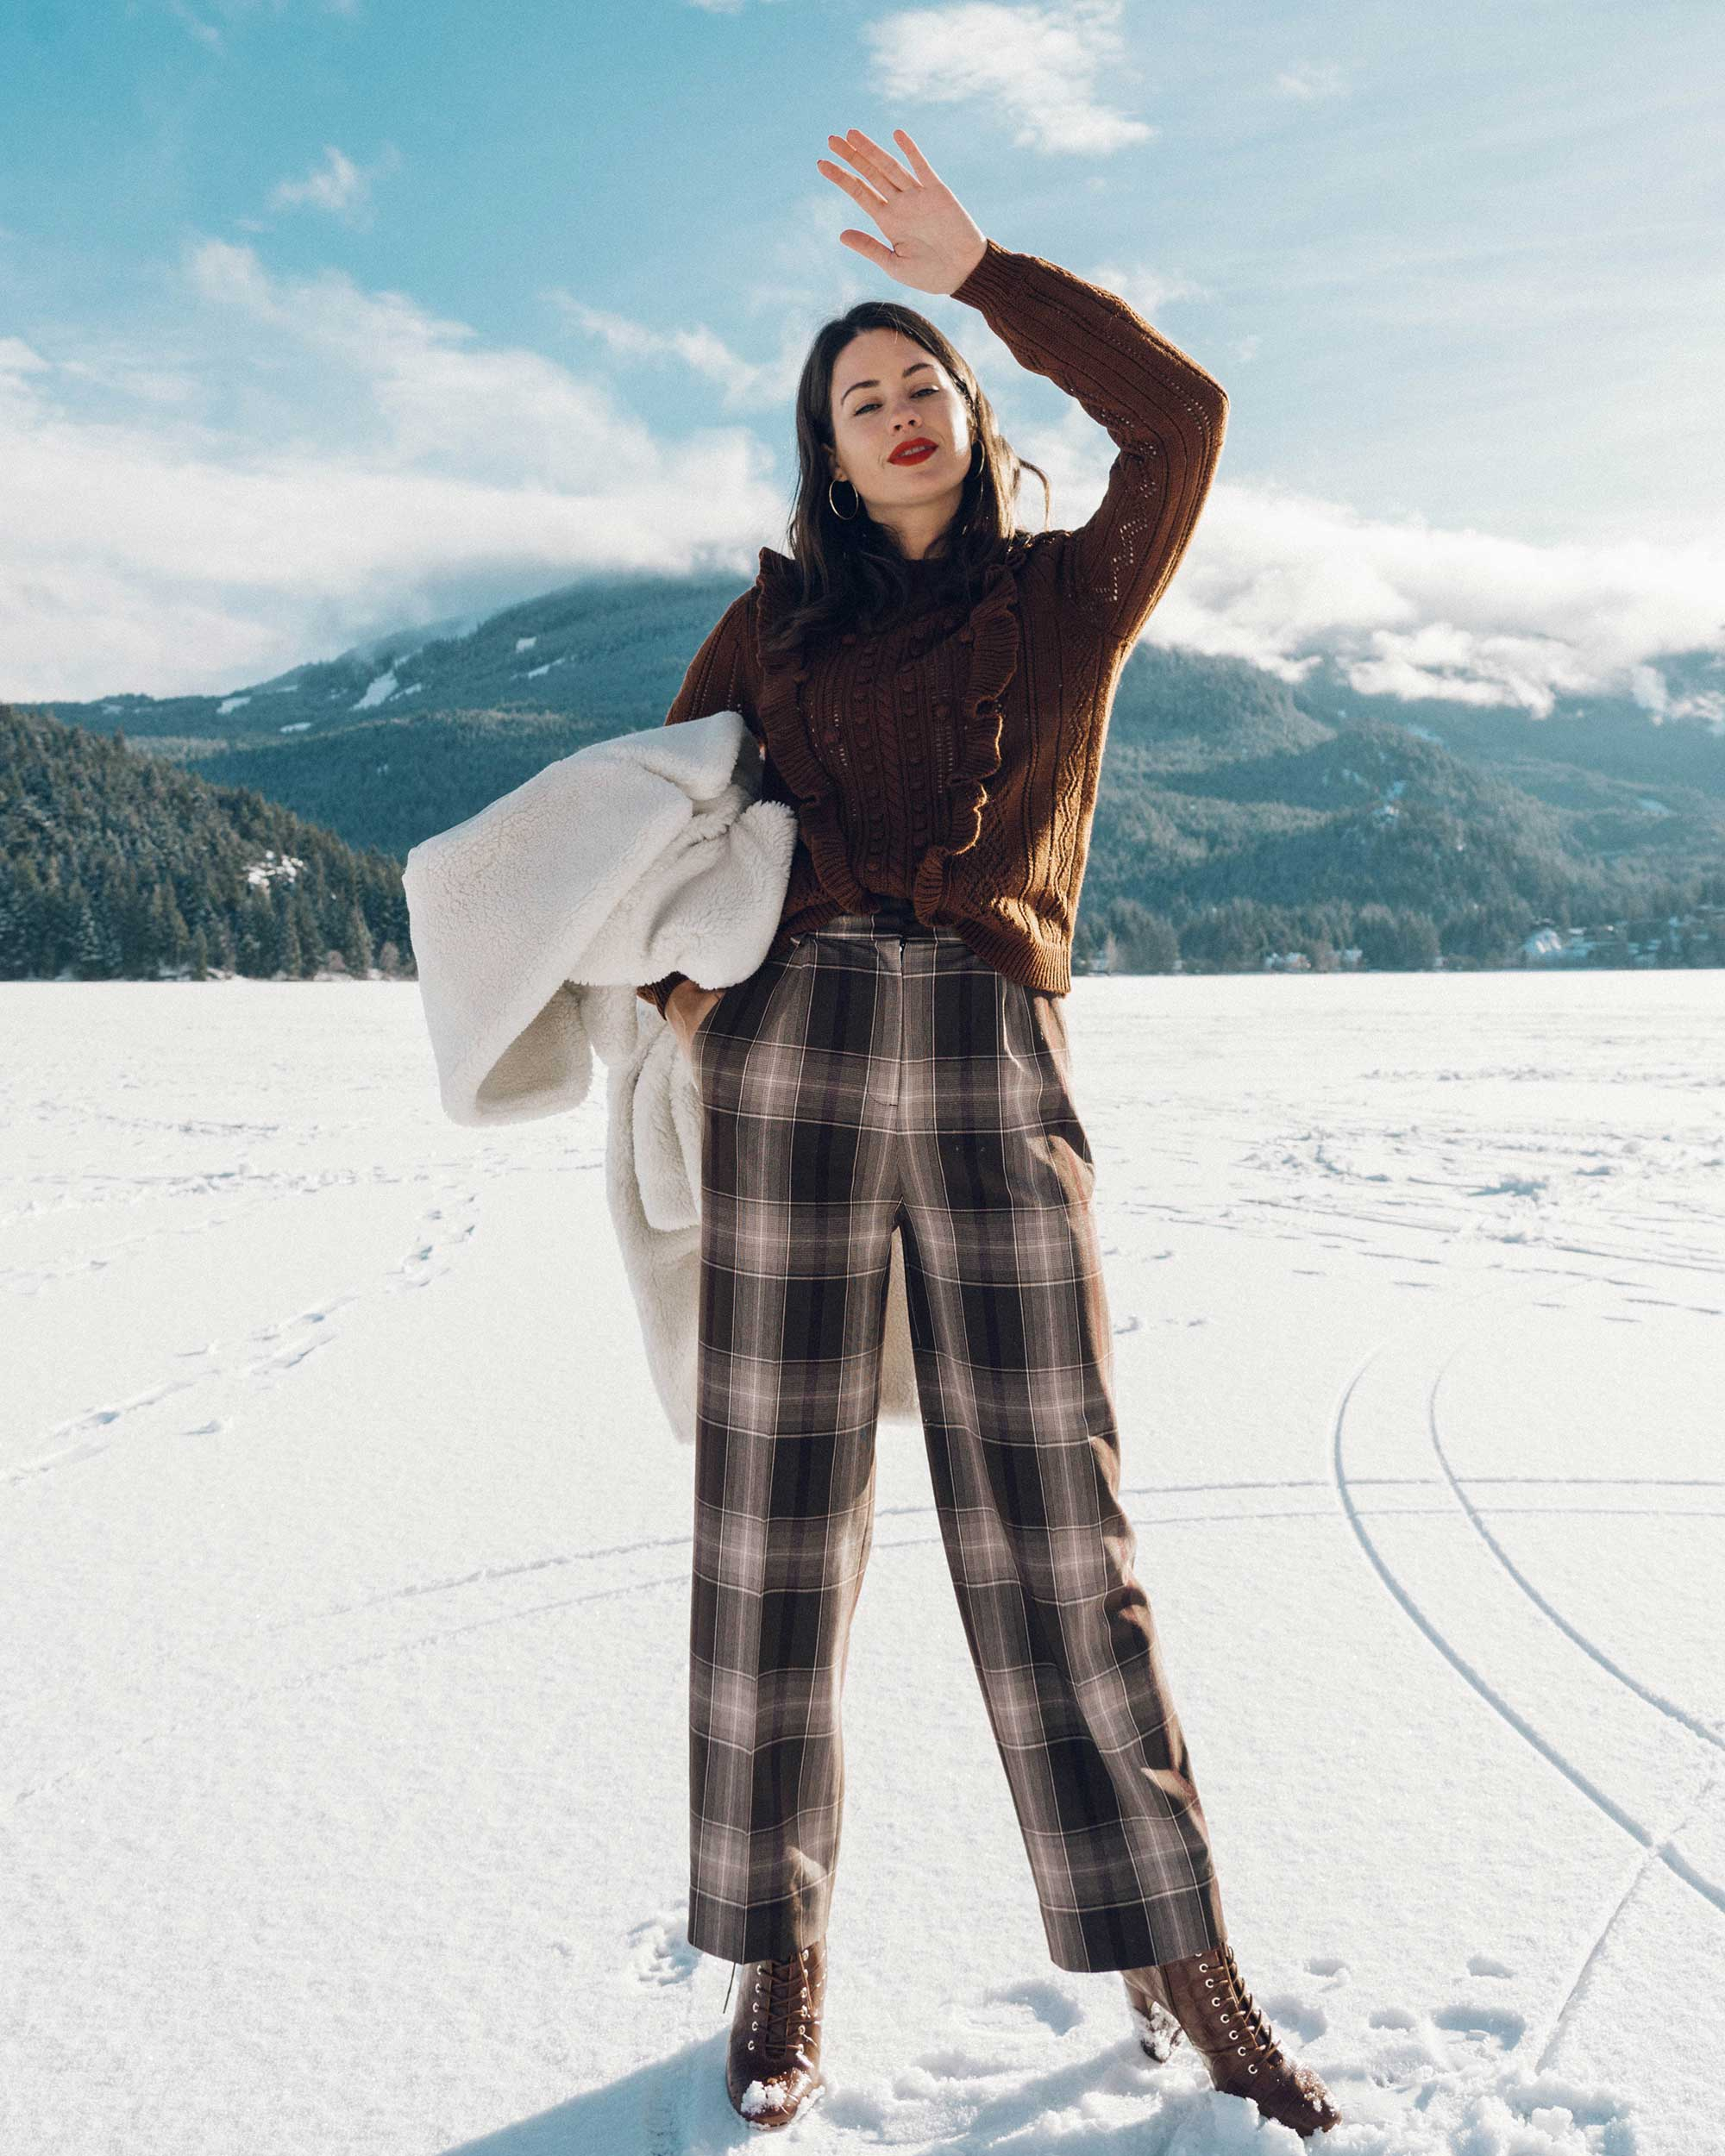 & Other Stories Tailored Brown Plaid Pants with pleats, white Faux Shearling Coat,  winter snow outfit, whistler canada9.jpg